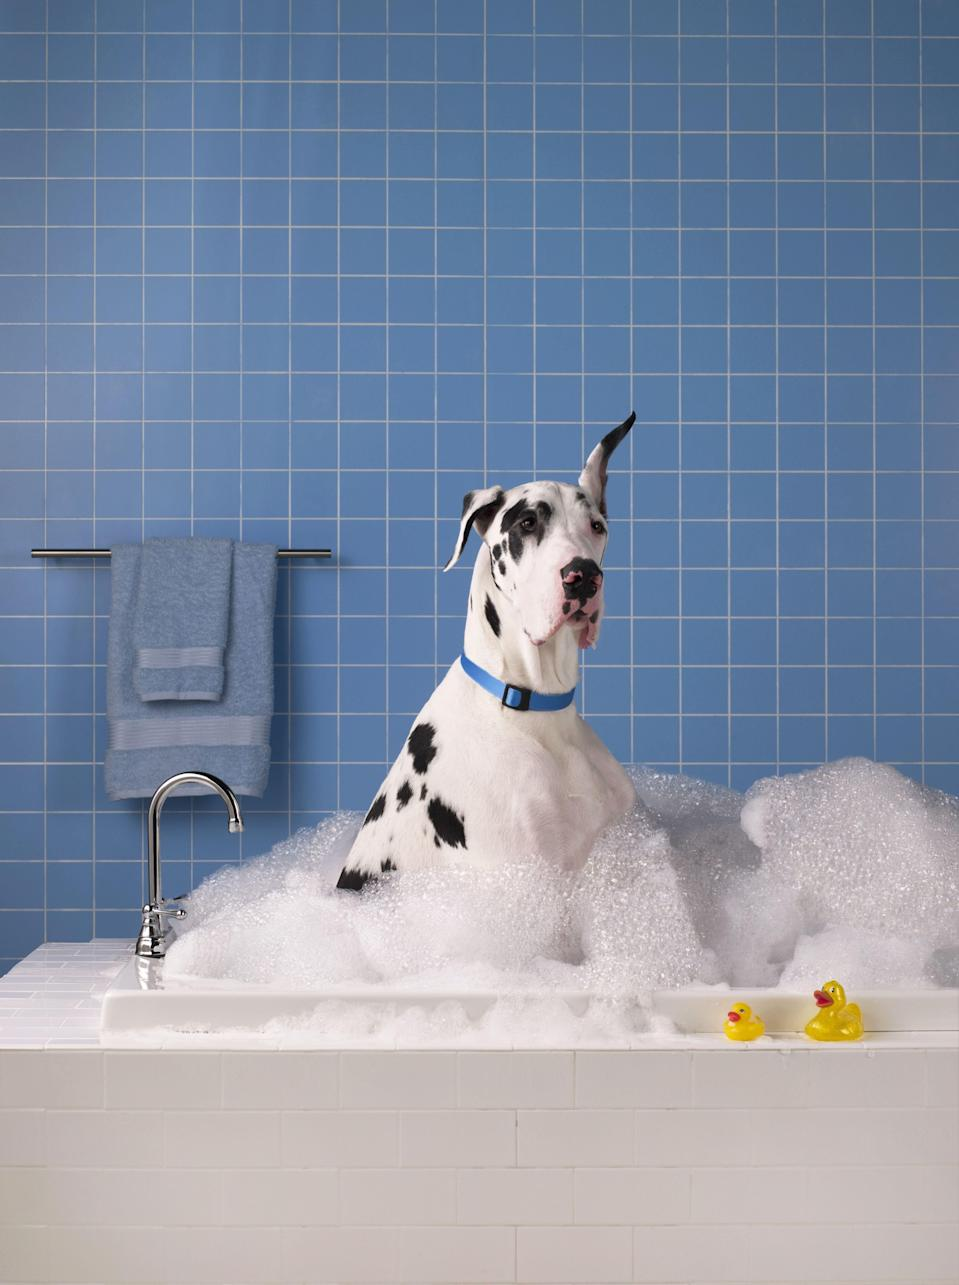 "<p>If your pet shampoo has been leaving your pup smelling like, well, a wet dog, then it's time for an upgrade. However, finding the right dog shampoo isn't as easy as it sounds. As you may have figured out, many dog shampoos promise more than they can deliver. ""The FDA does not regulate grooming aids (pet cosmetics) unless they are a drug, meaning they are intended for medical purposes,"" explains<strong> <a href=""https://www.goodhousekeeping.com/author/12432/birnur-aral-phd/"" rel=""nofollow noopener"" target=""_blank"" data-ylk=""slk:Birnur Aral, Ph.D."" class=""link rapid-noclick-resp"">Birnur Aral, Ph.D.</a>,</strong> Director of the Good Housekeeping Institute's Health, Beauty and Environmental Sciences Lab. ""Therefore, the barrier to entry into this market is even lower than that for cosmetics, which in short are defined as products intended for beautifying and cleansing of human skin, hair and nails. This has recently led to an explosion of pet grooming brands, for that matter dog shampoo products, in the market.""</p><p>Basically, you should be looking for the same thing in dog shampoos that you look for in human shampoos — to remove dirt and oil. Also, a vet's recommendation doesn't hurt. ""When choosing a dog shampoo, we recommend that consumers rely on their veterinarians for guidance or use products from established brands,"" says Aral. ""After all, a shampoo's main function, whether for humans or pets, is to clean hair and underlying skin. Clean hair and coat will be shinier when there is no dirt and oil which are known to dull the appearance of the hair fibers."" To keep your four-legged friends happy and clean, here are the best dog shampoos to buy.</p>"